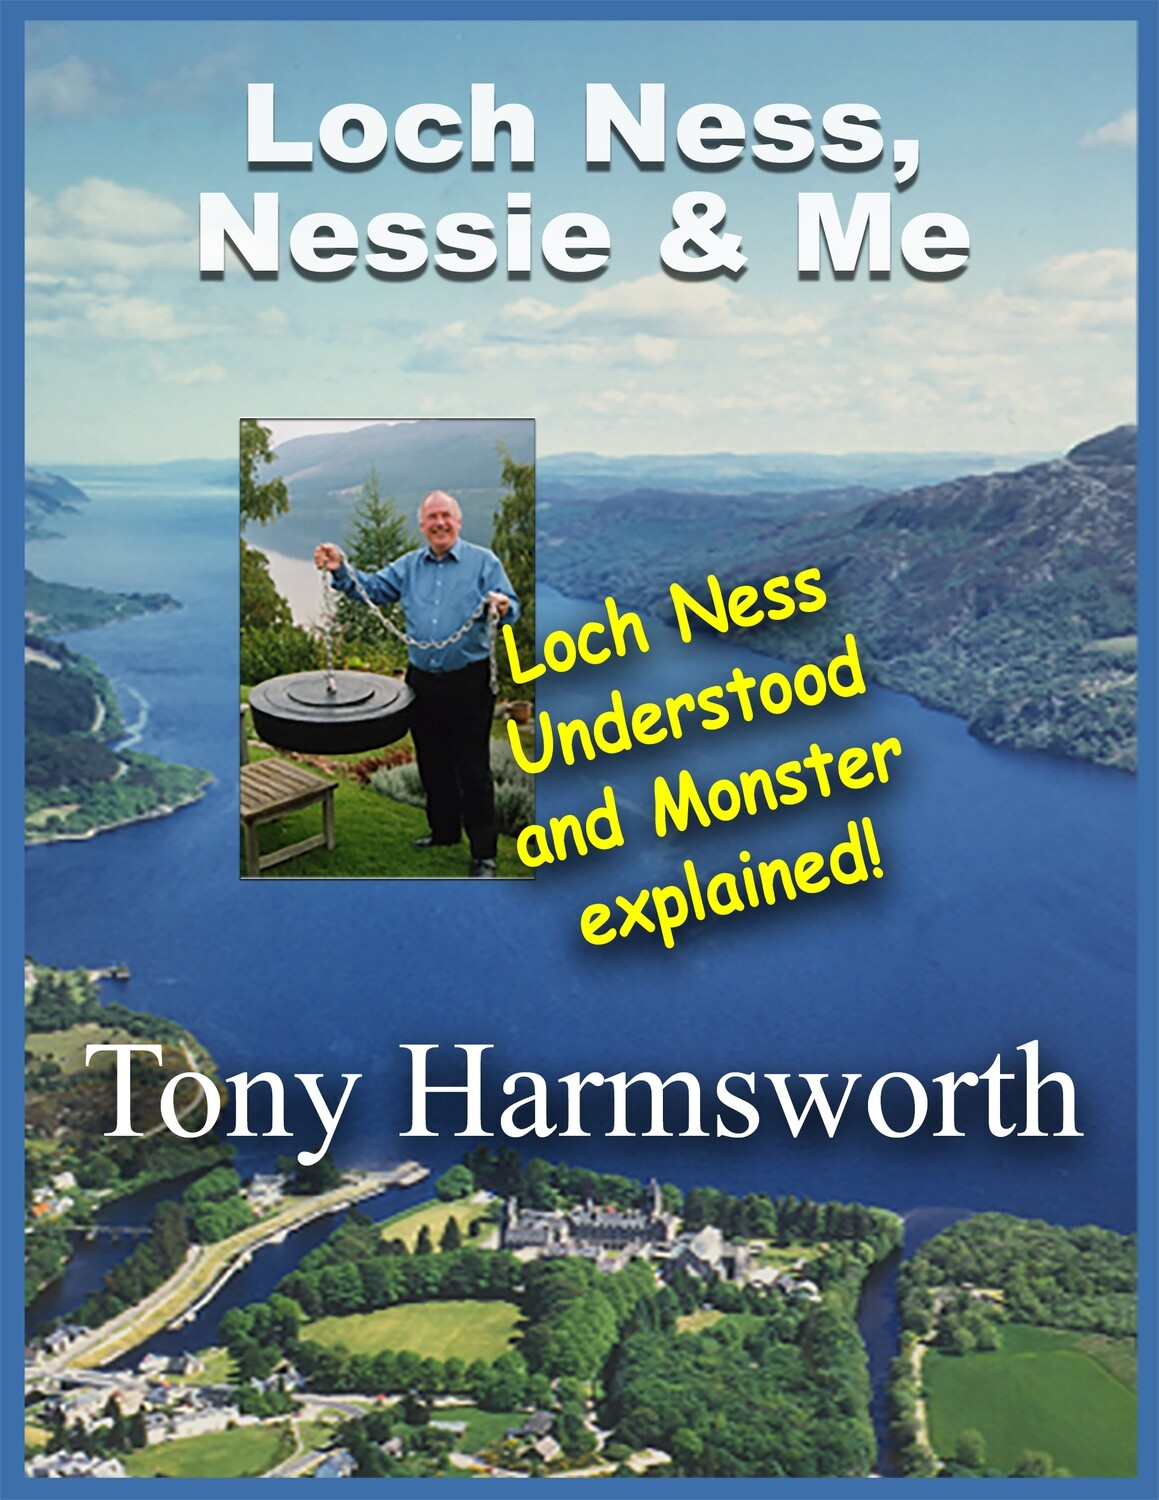 NON-FICTION Loch Ness, Nessie & Me (signed paperback)